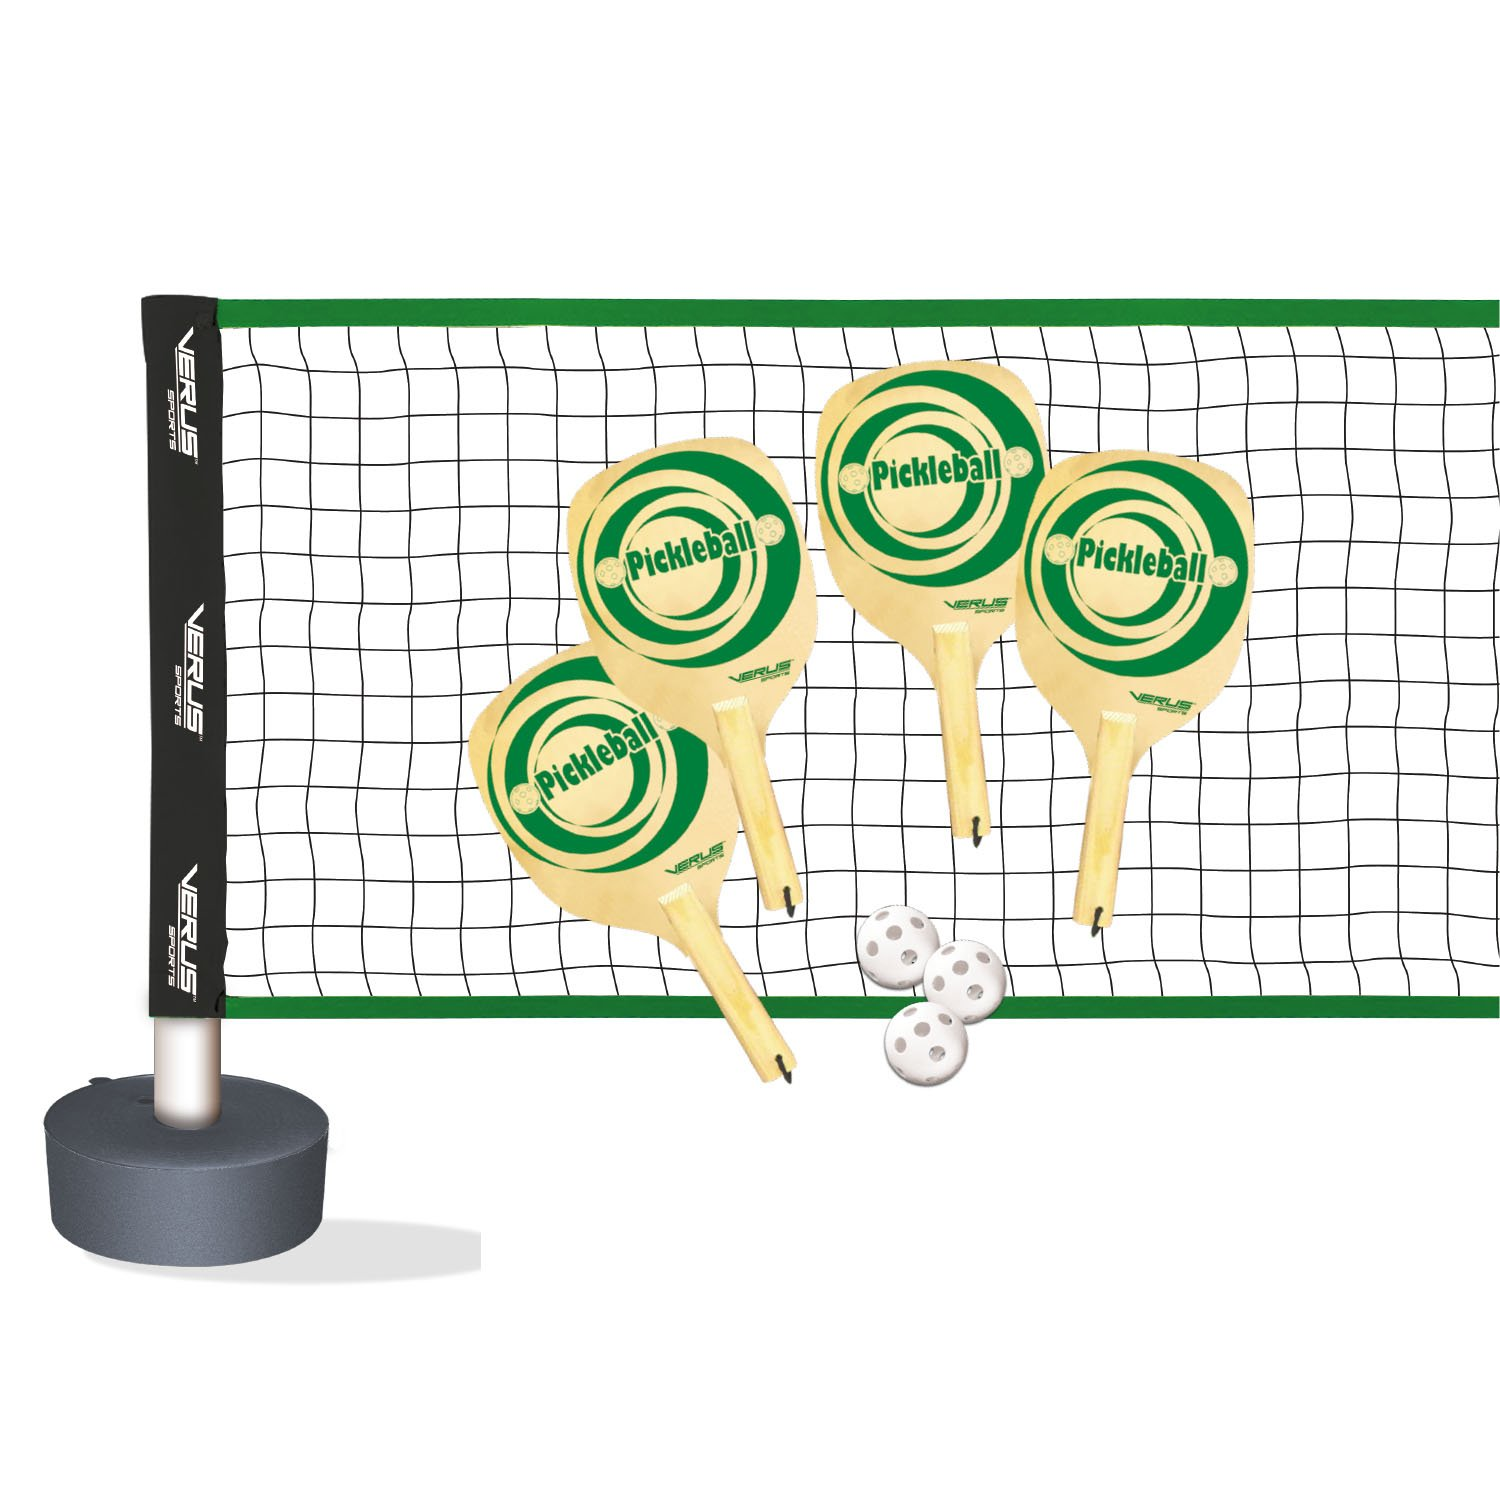 Verus Sports TG410 Complete Pickle ball Set (includes net, base, paddles, and balls) by Verus Sports